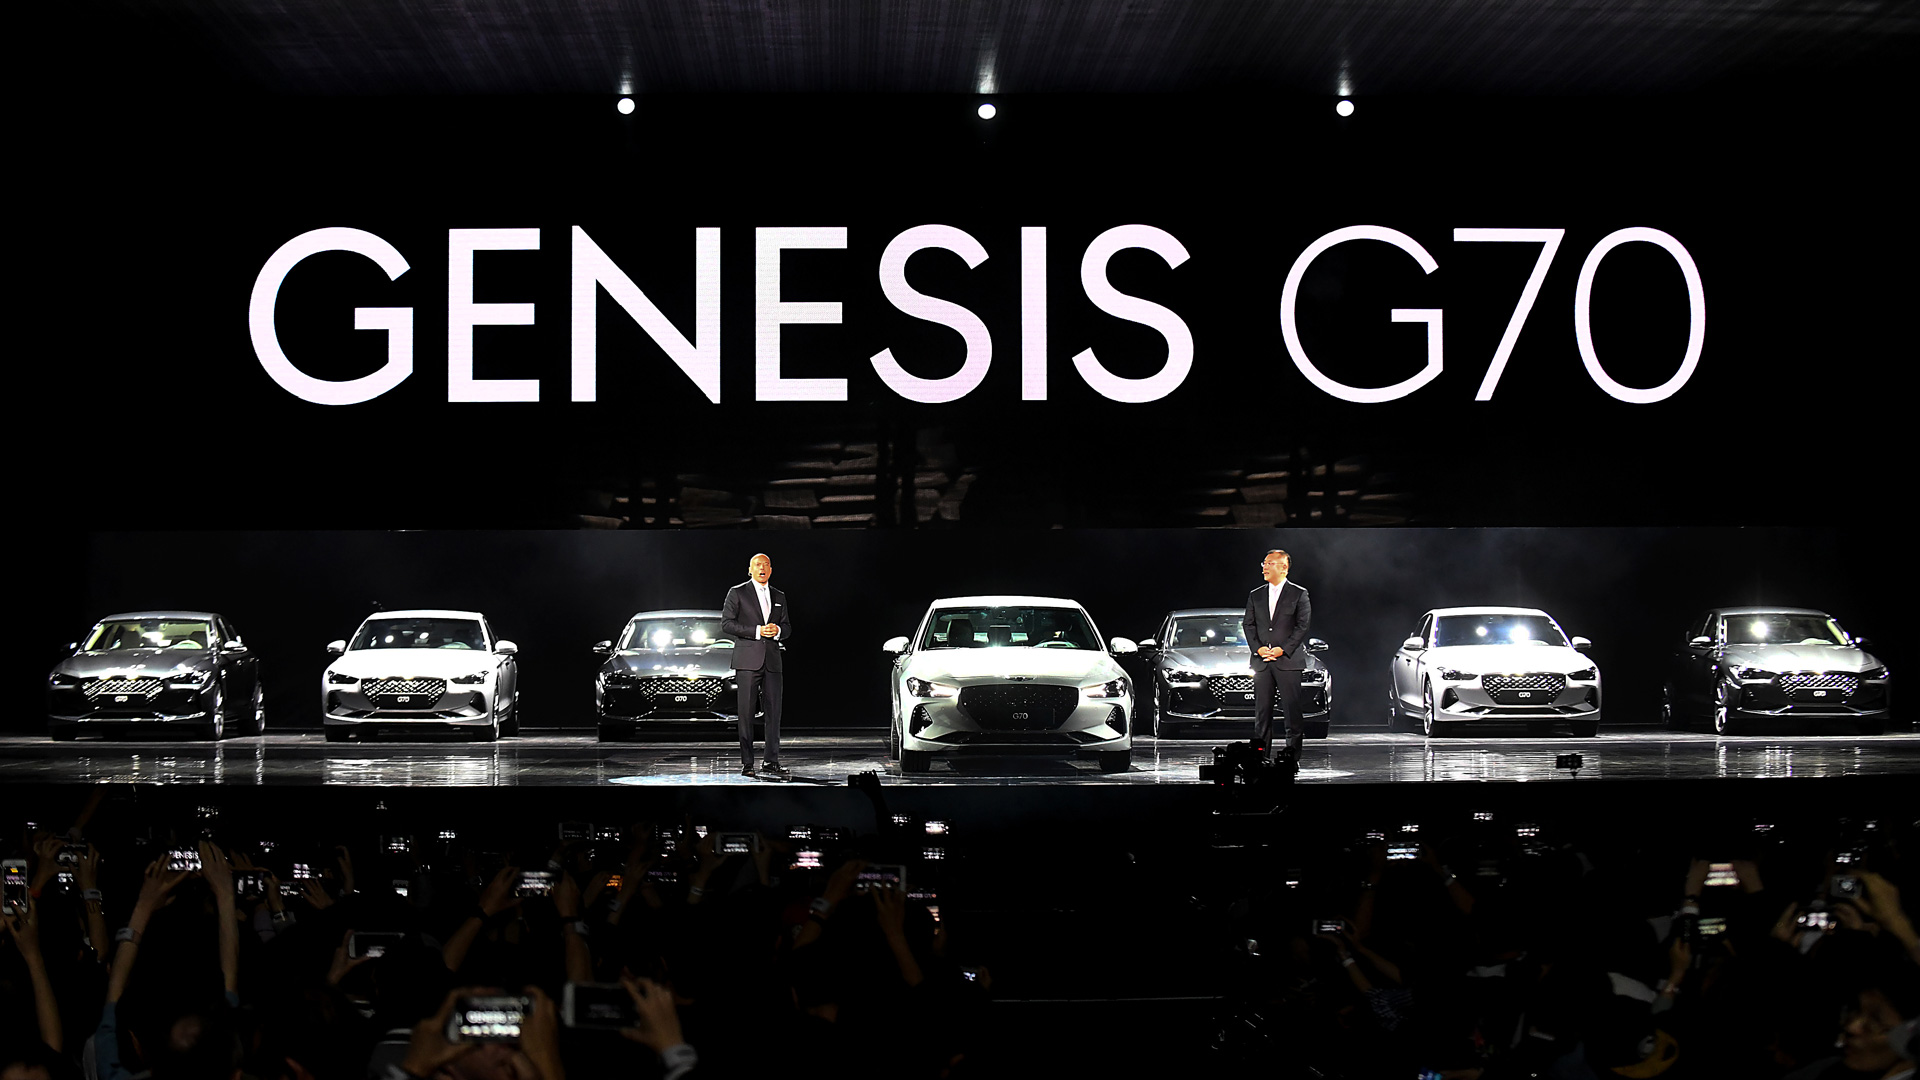 Manfred Fitzgerald and a colleague stand beside seven Genesis G70 models on stage.